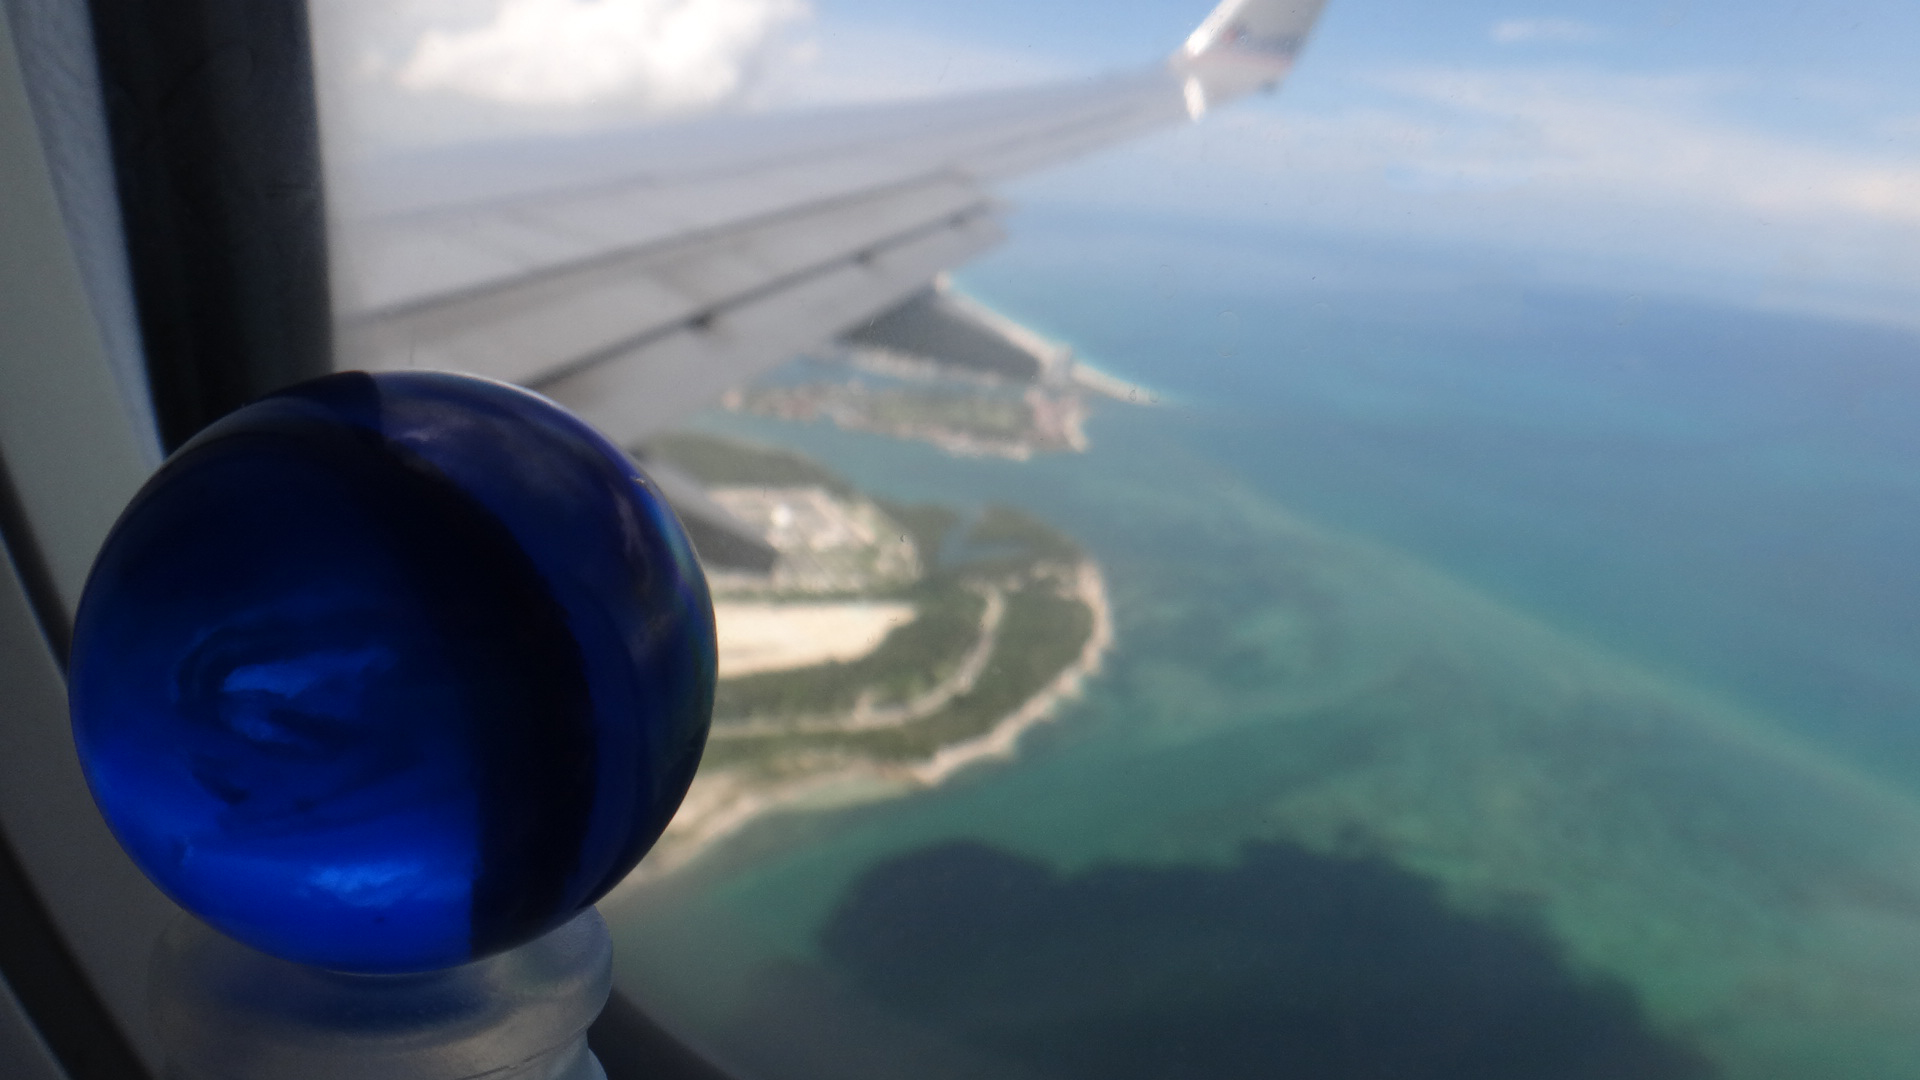 Leaving Belize with blue marble...